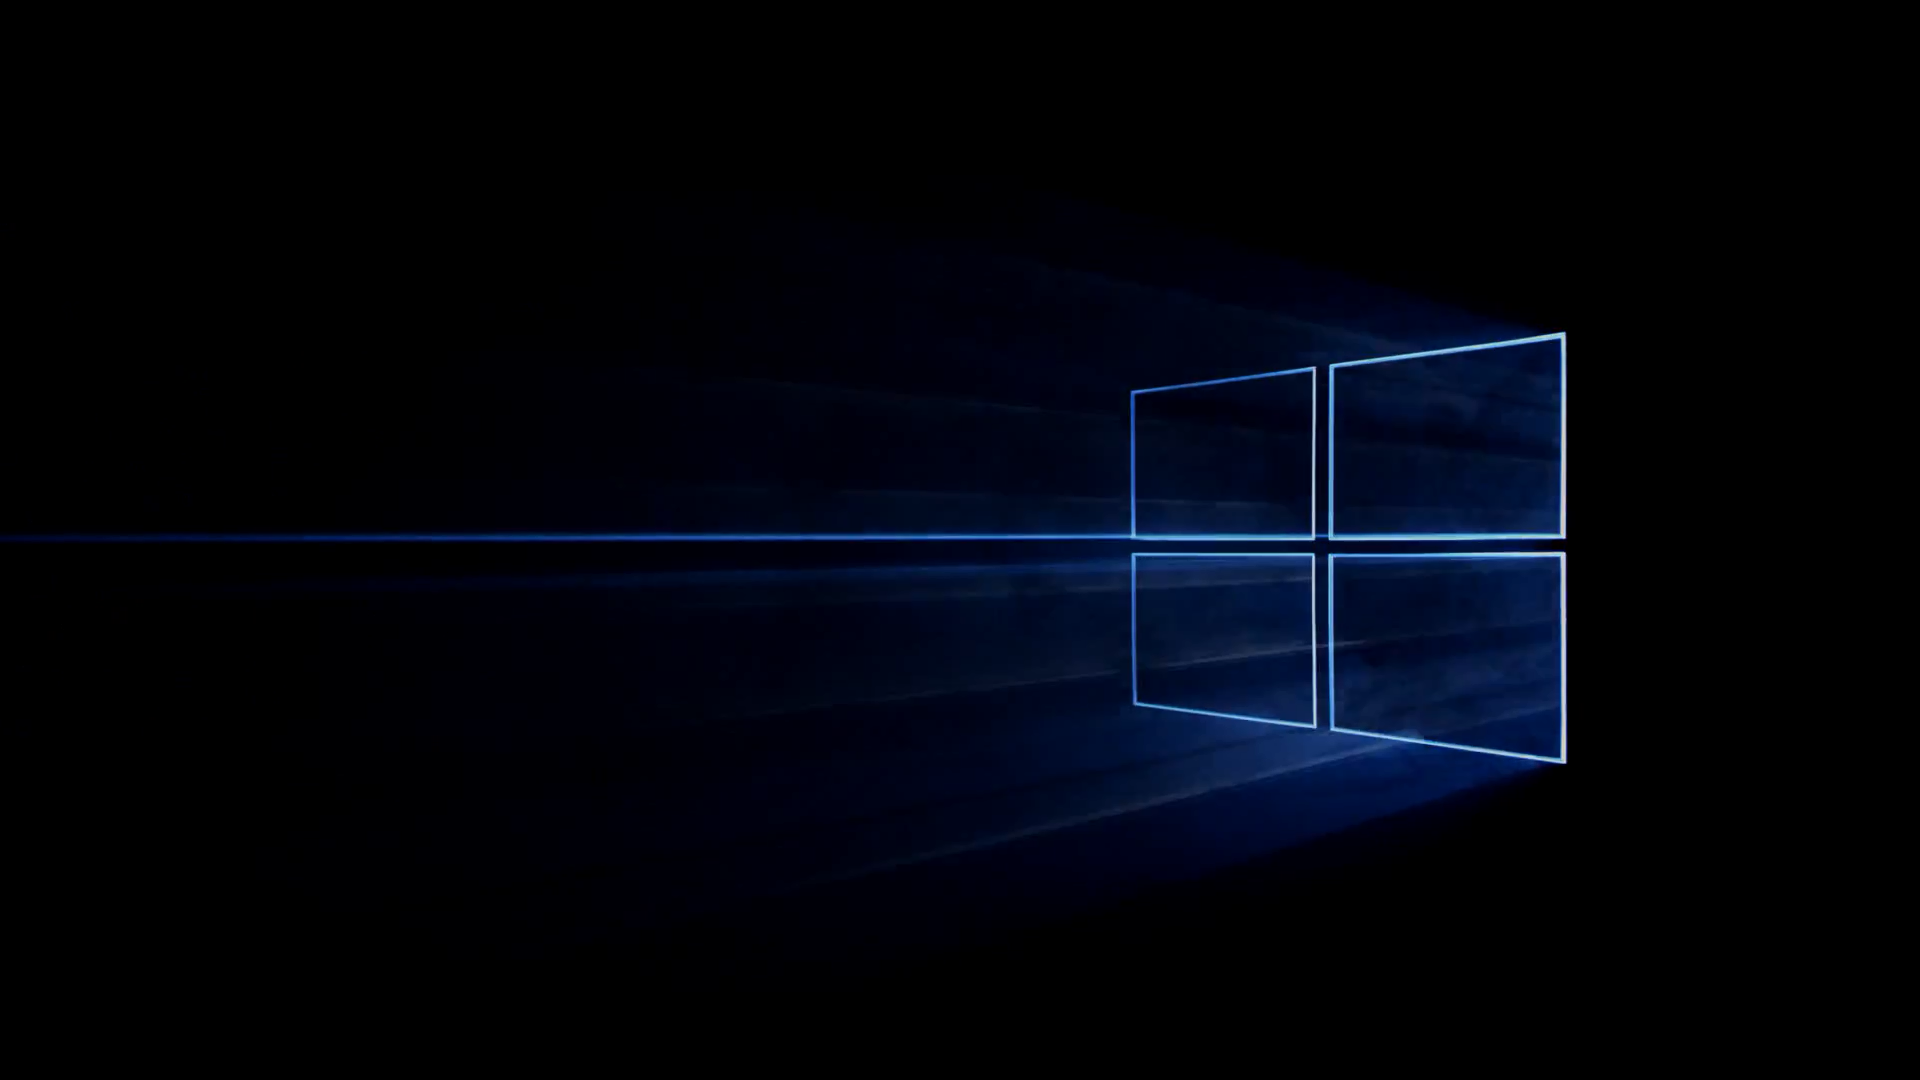 Windows 10 Backgrounds, Pictures, Images Wallpaper Windows 10 Hd